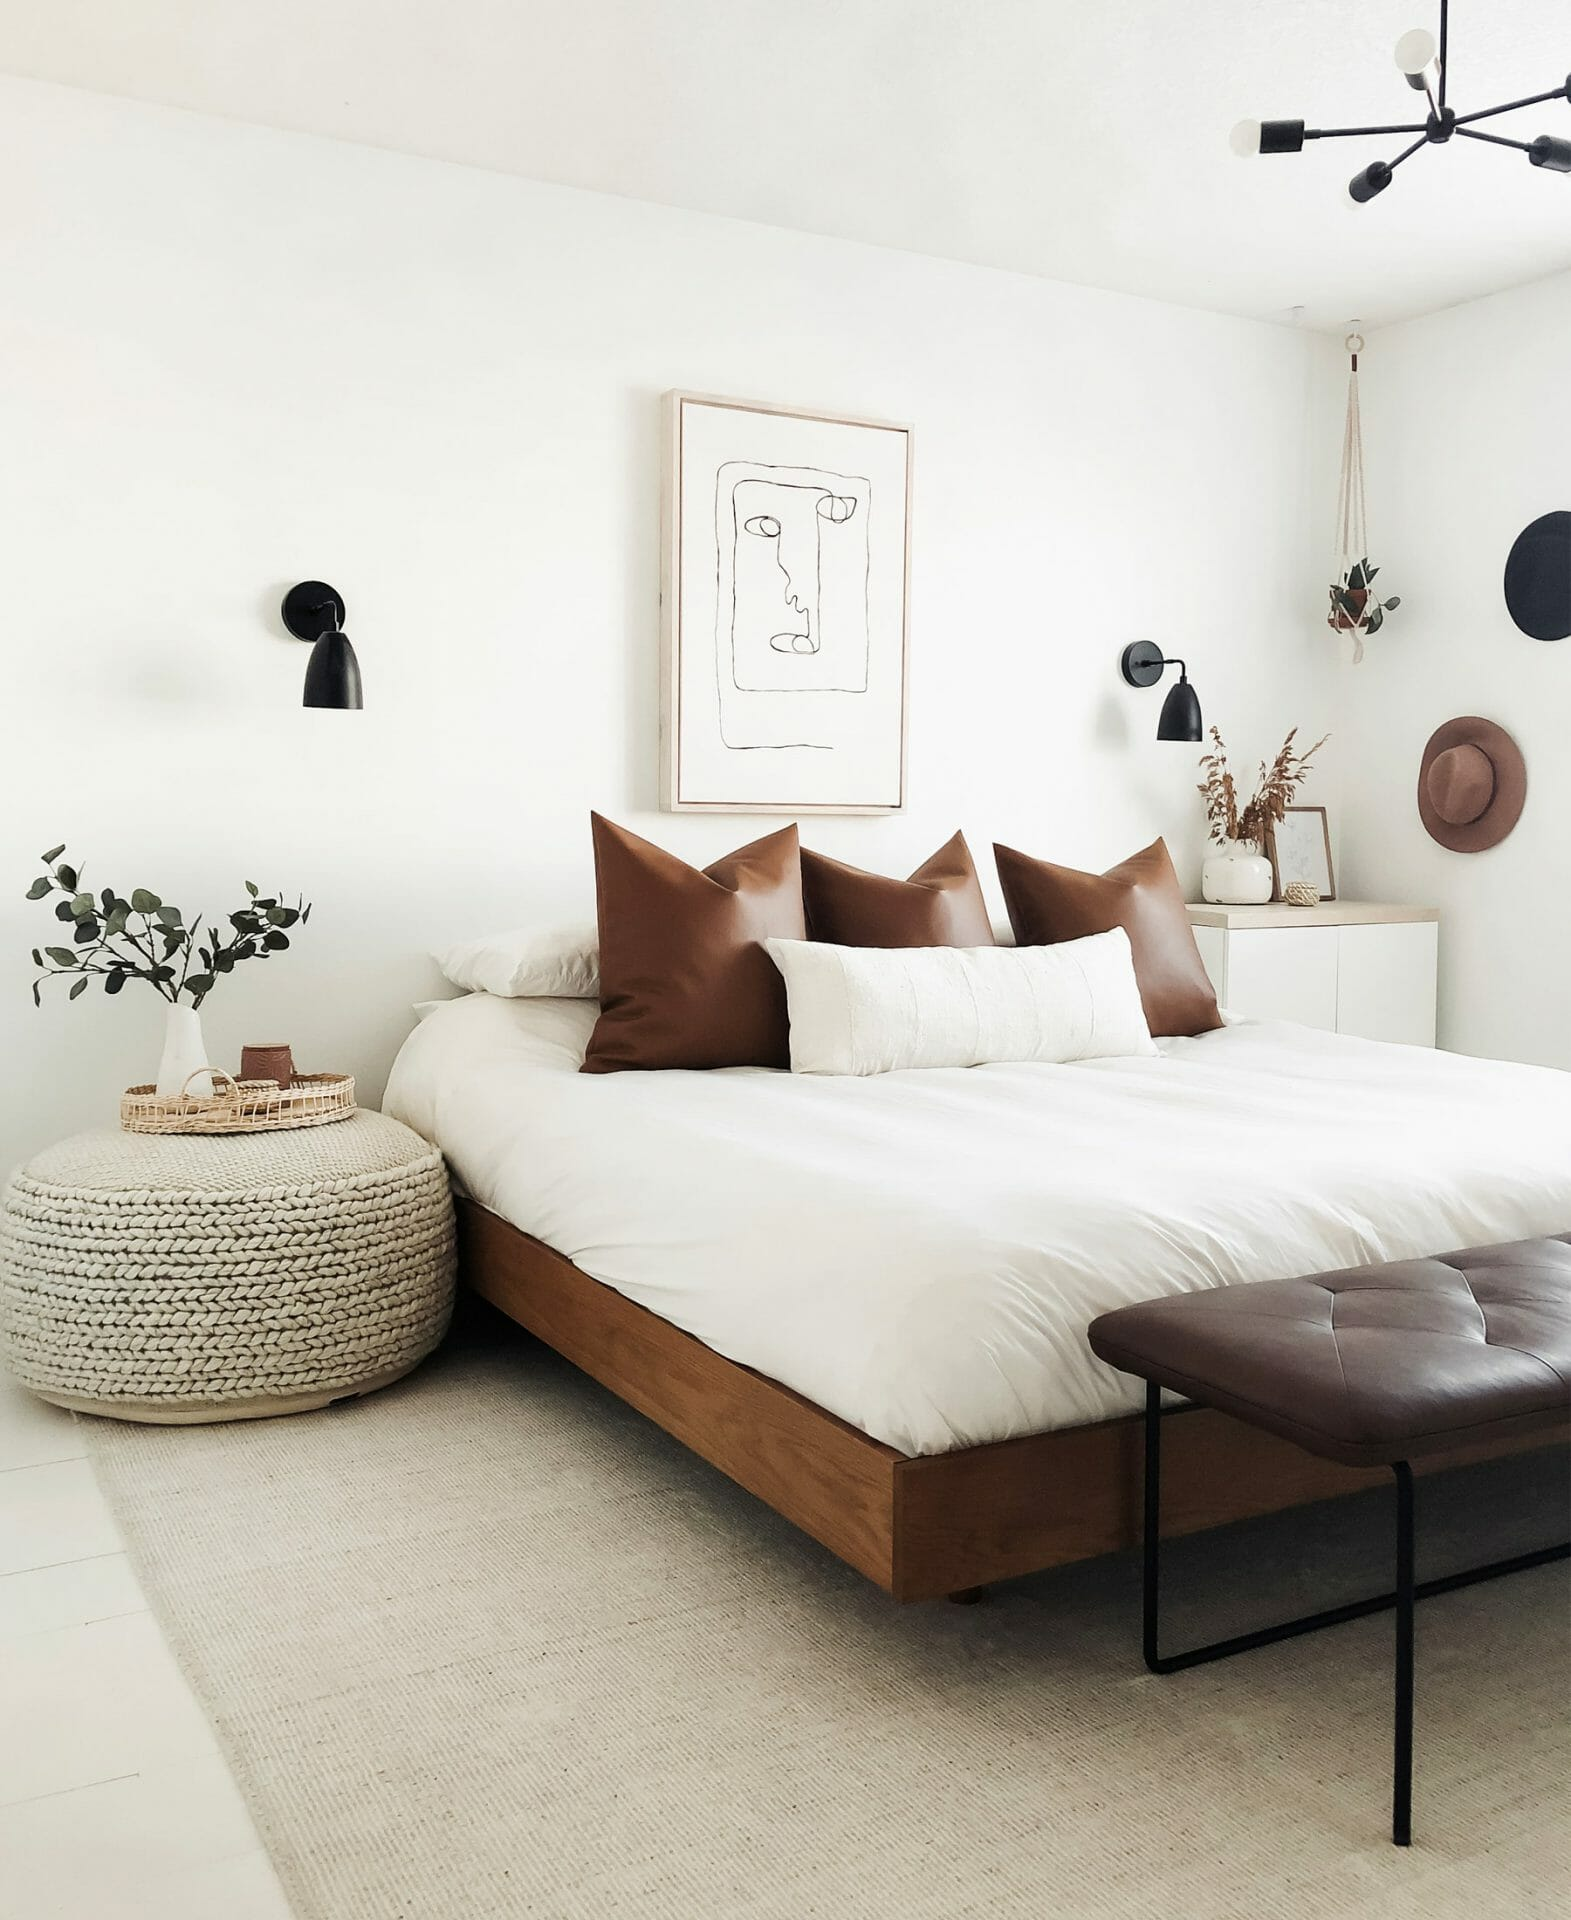 Frankie and Grae's bedroom features the Hira Ottoman.